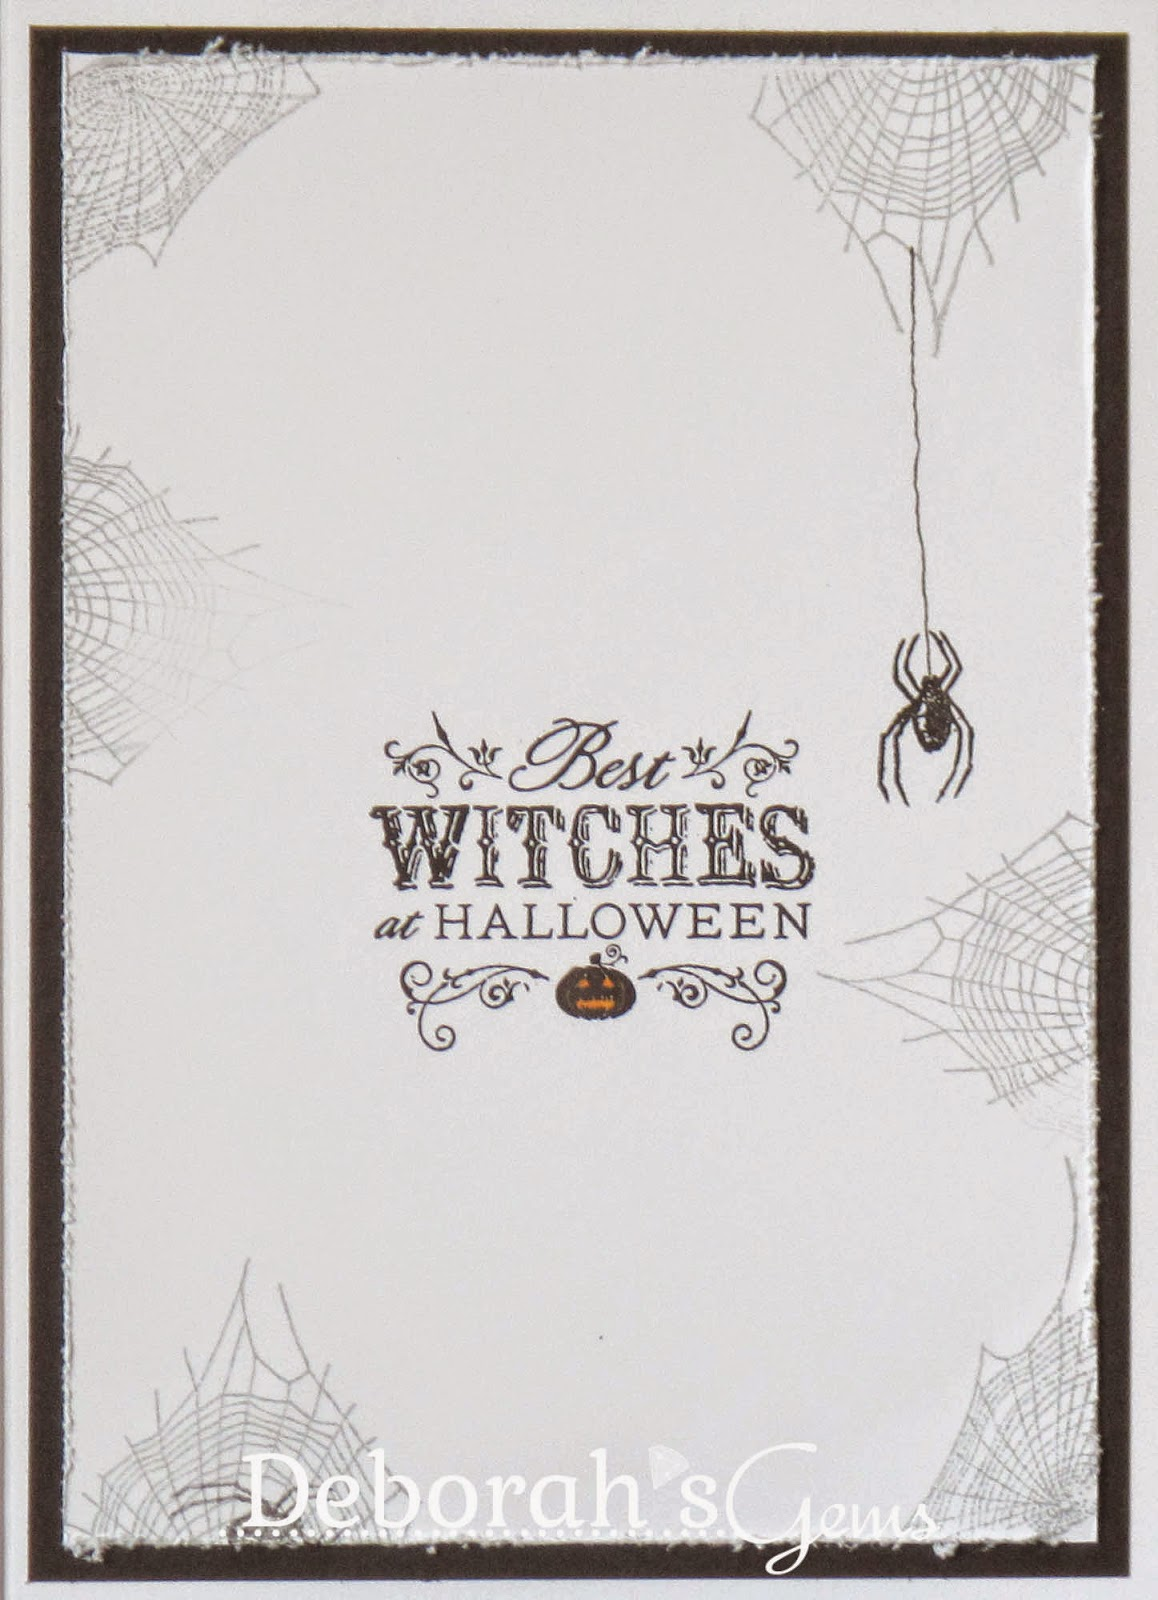 Halloween Greetings inside - photo by Deborah Frings - Deborah's Gems